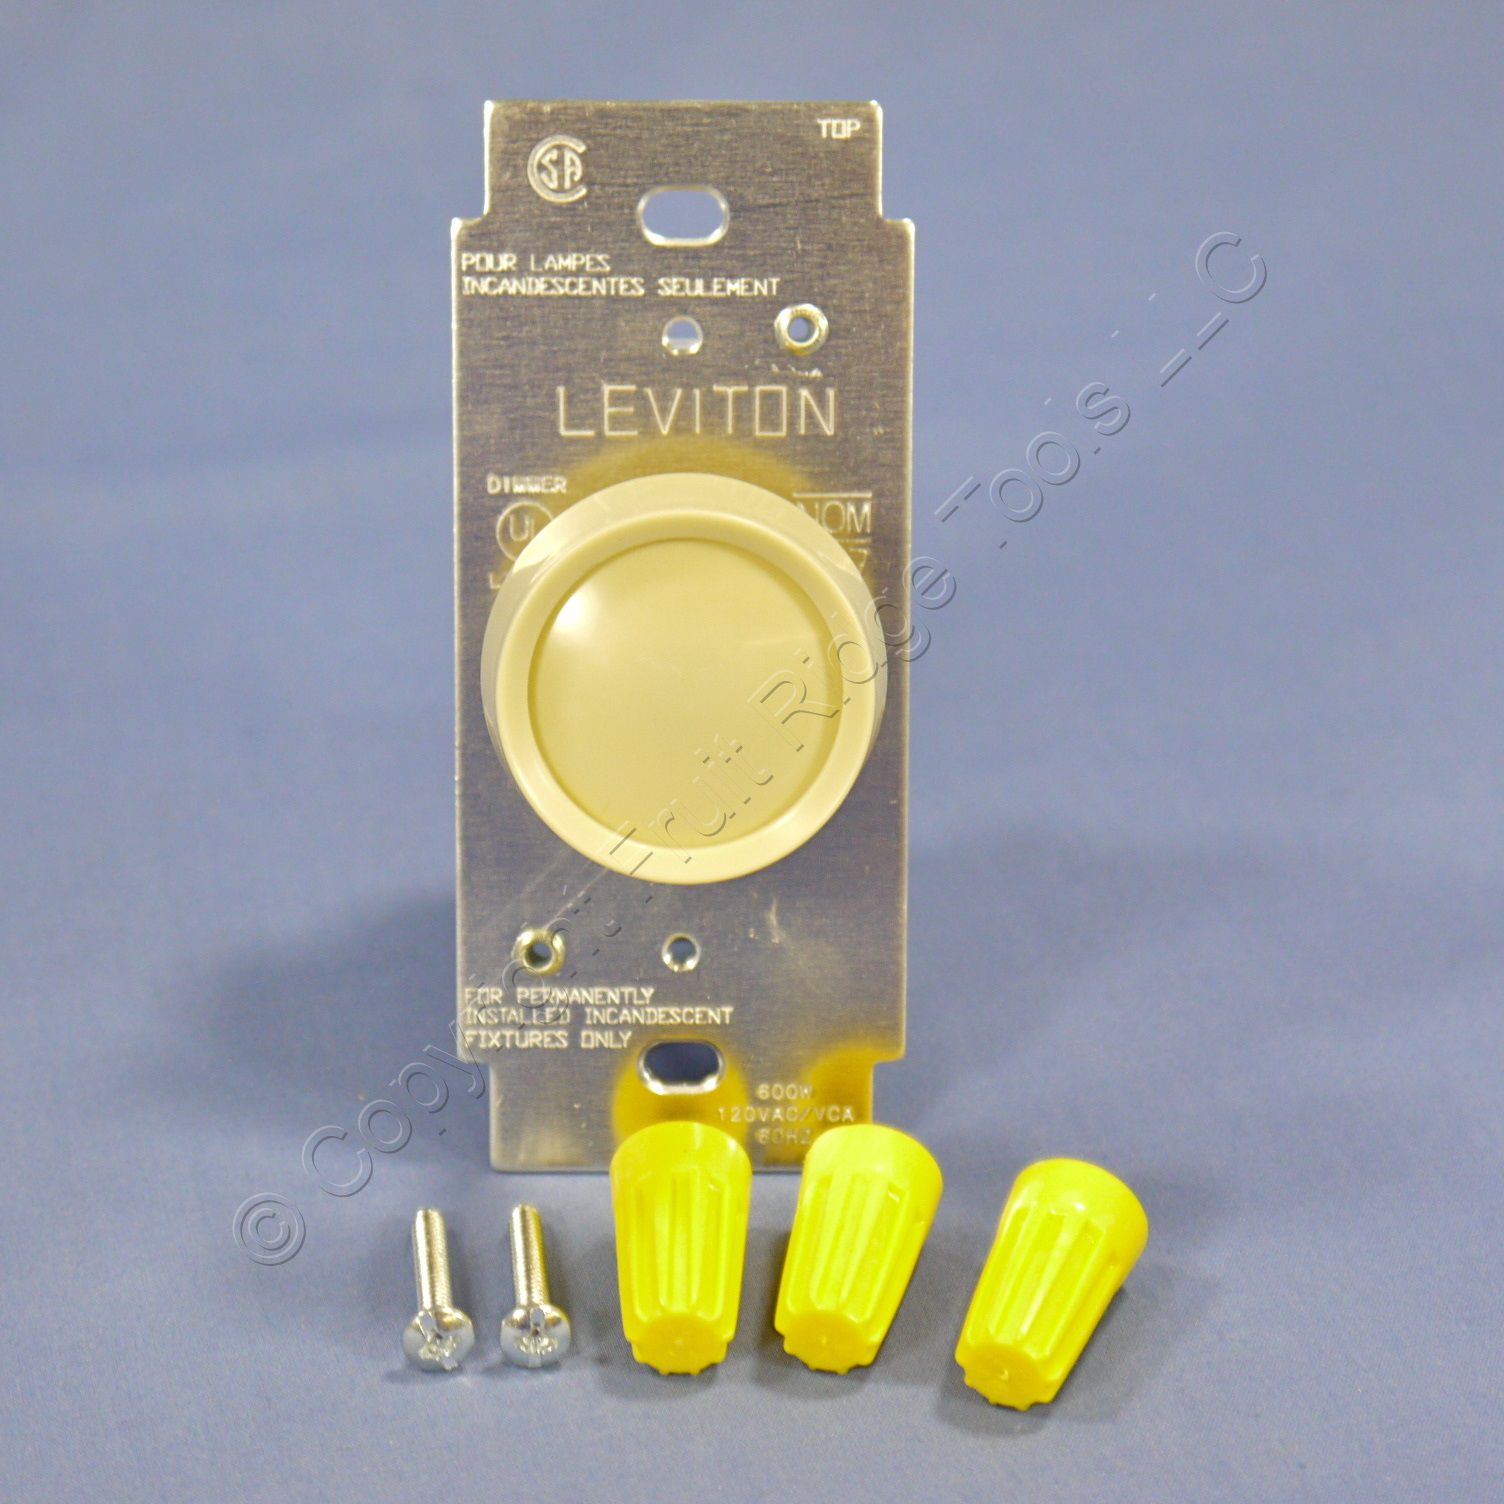 new leviton ivory turn knob rotary light dimmer switch. Black Bedroom Furniture Sets. Home Design Ideas